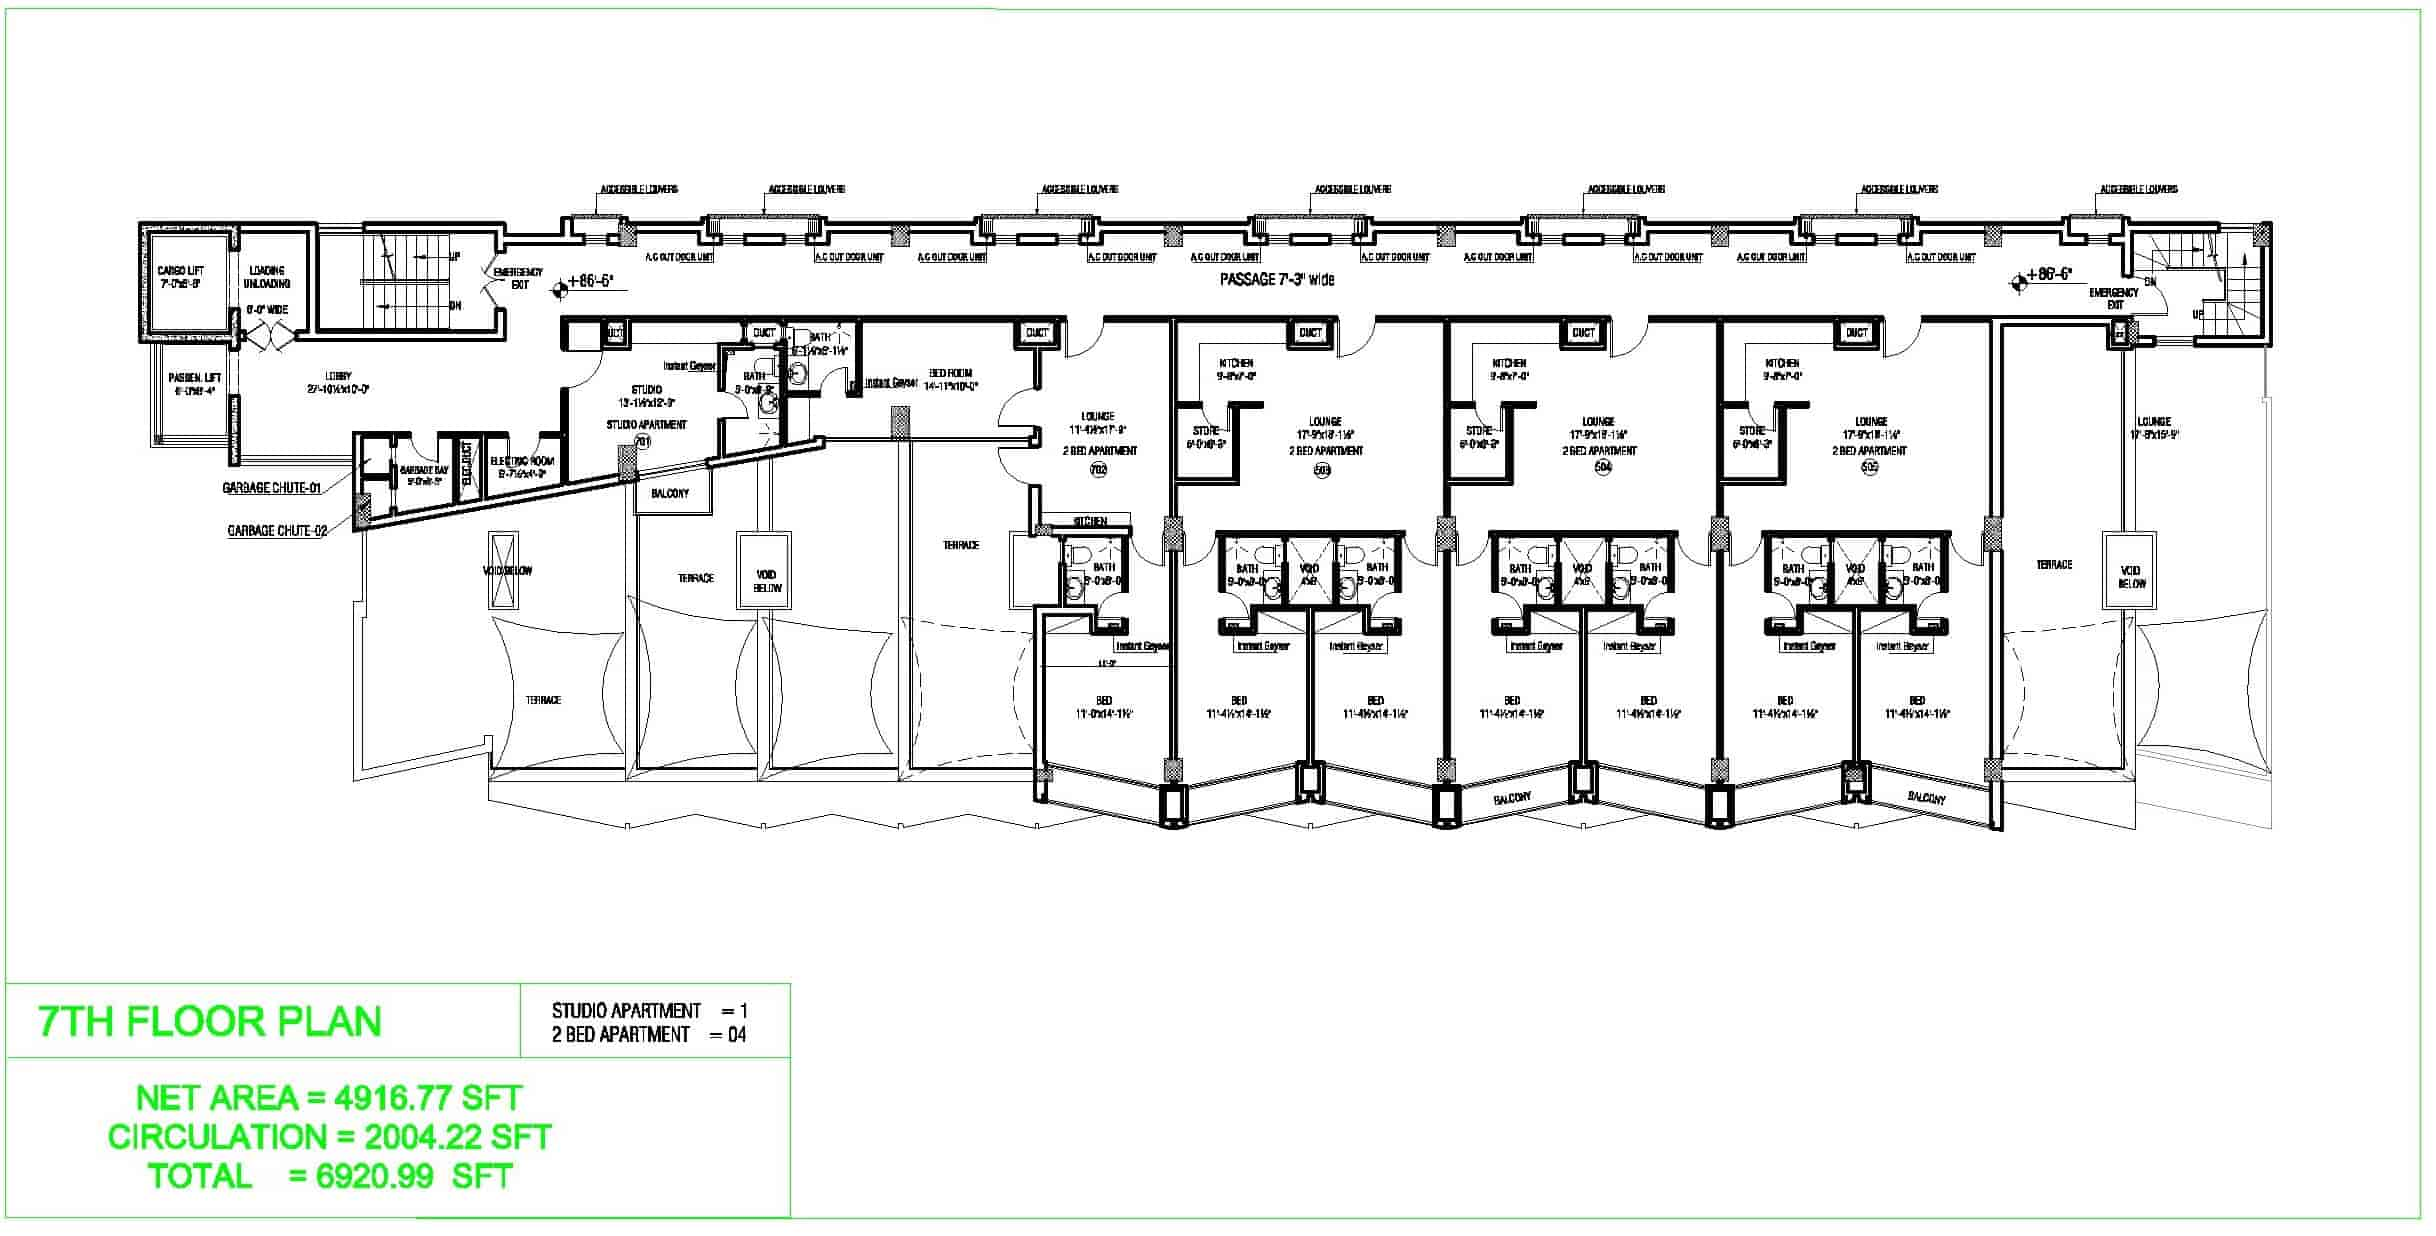 Liberty Tower 7th Floor Plan